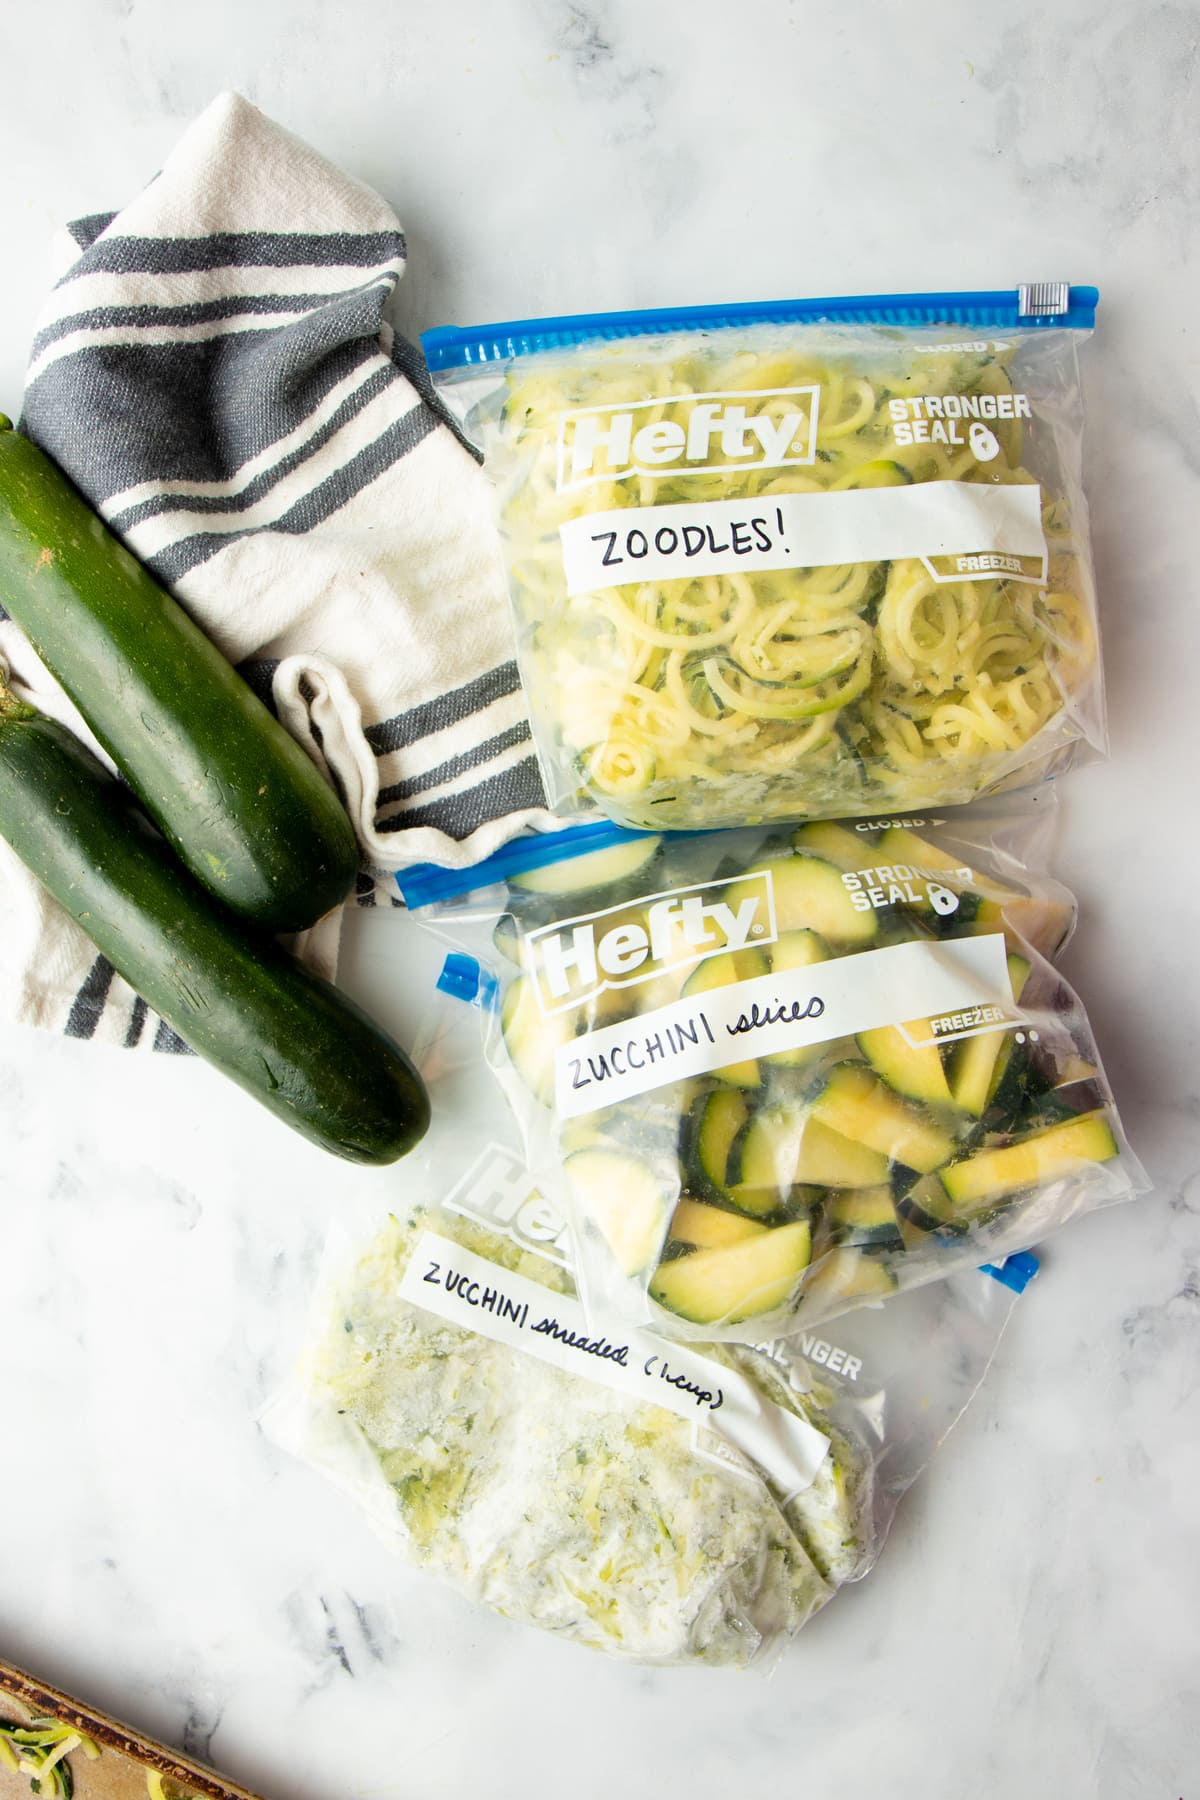 Three Hefty freezer bags filled with frozen sliced zucchini, frozen zucchini noodles, and frozen shredded zucchini.